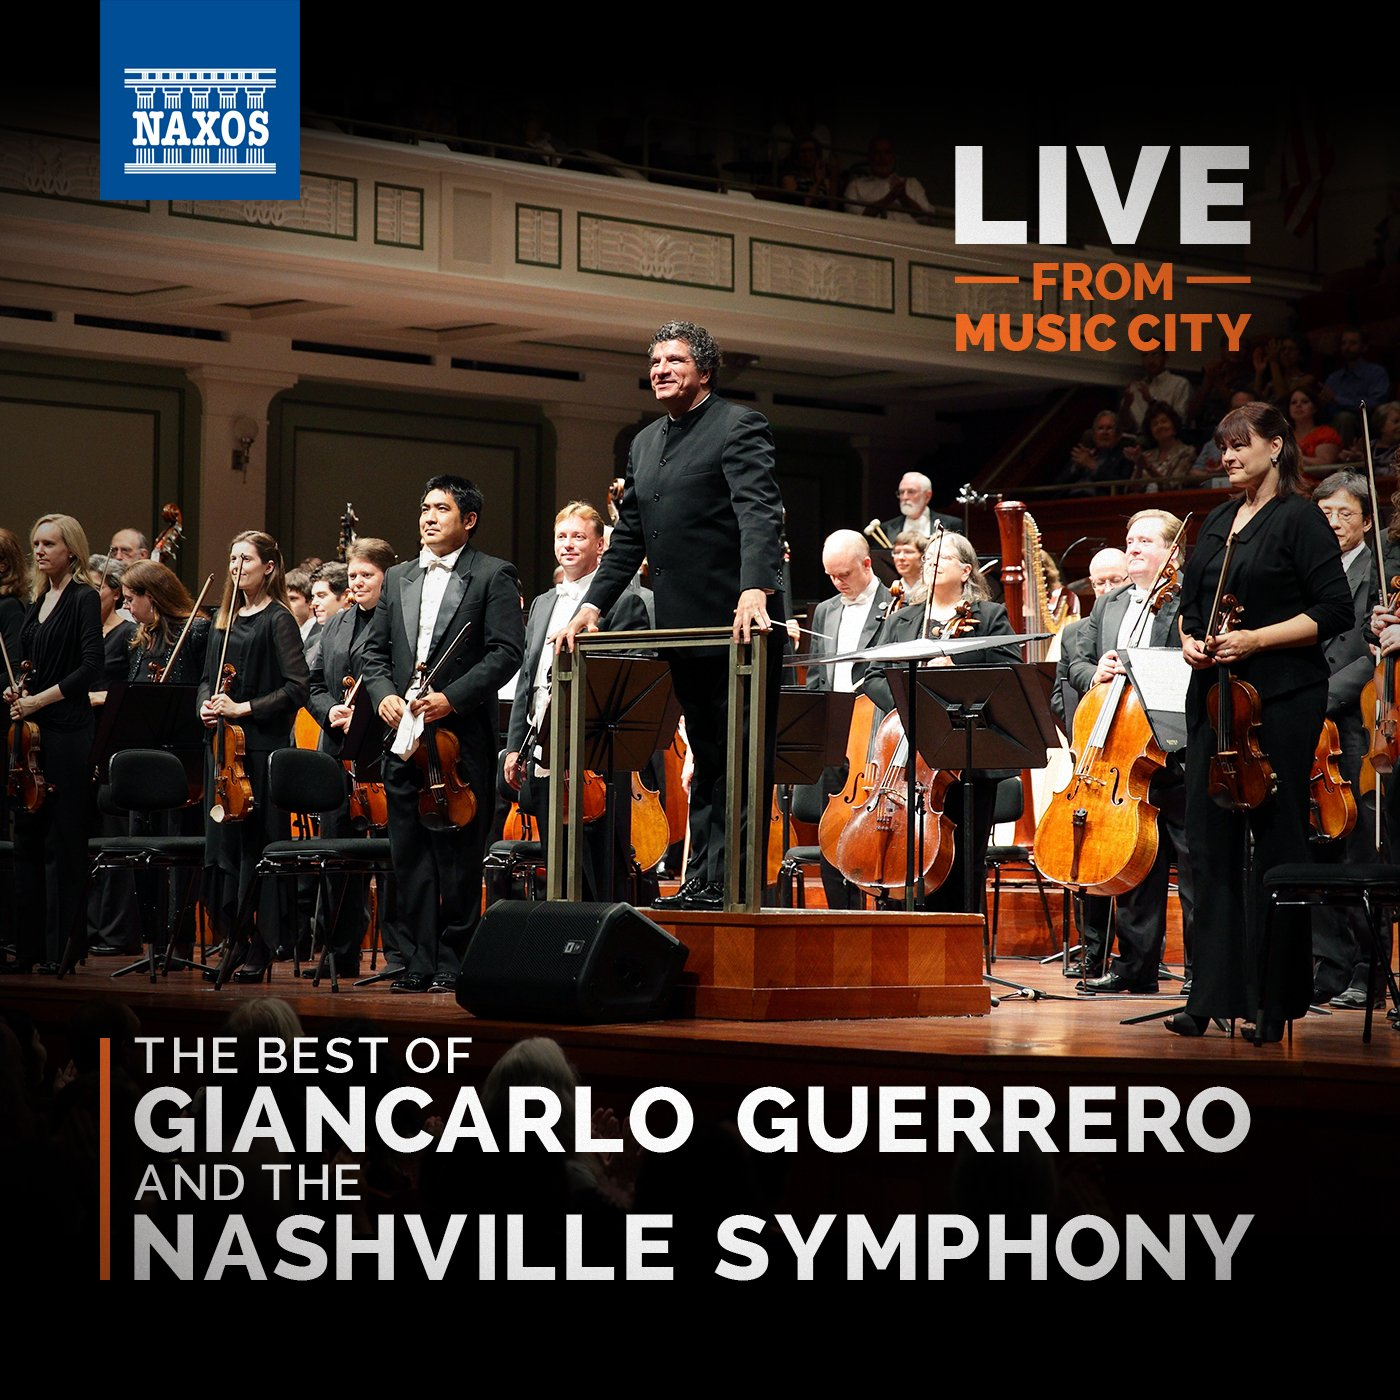 LIVE from Music City: The Best of Giancarlo Guerrero and The Nashville Symphony